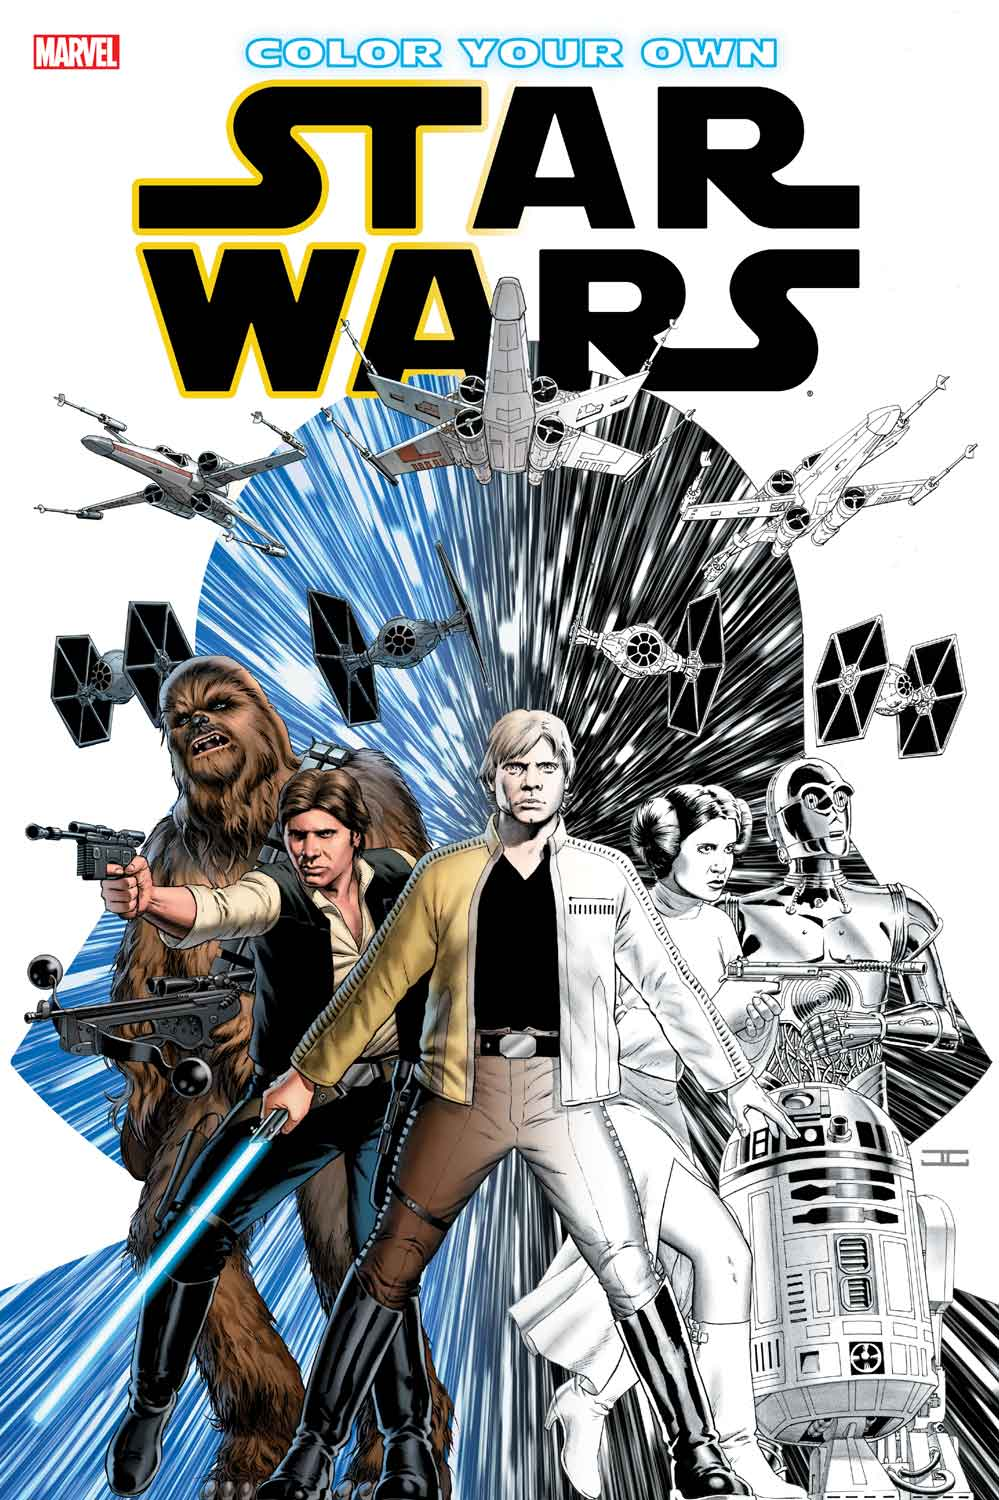 color your own star wars - Marvel Coloring Books